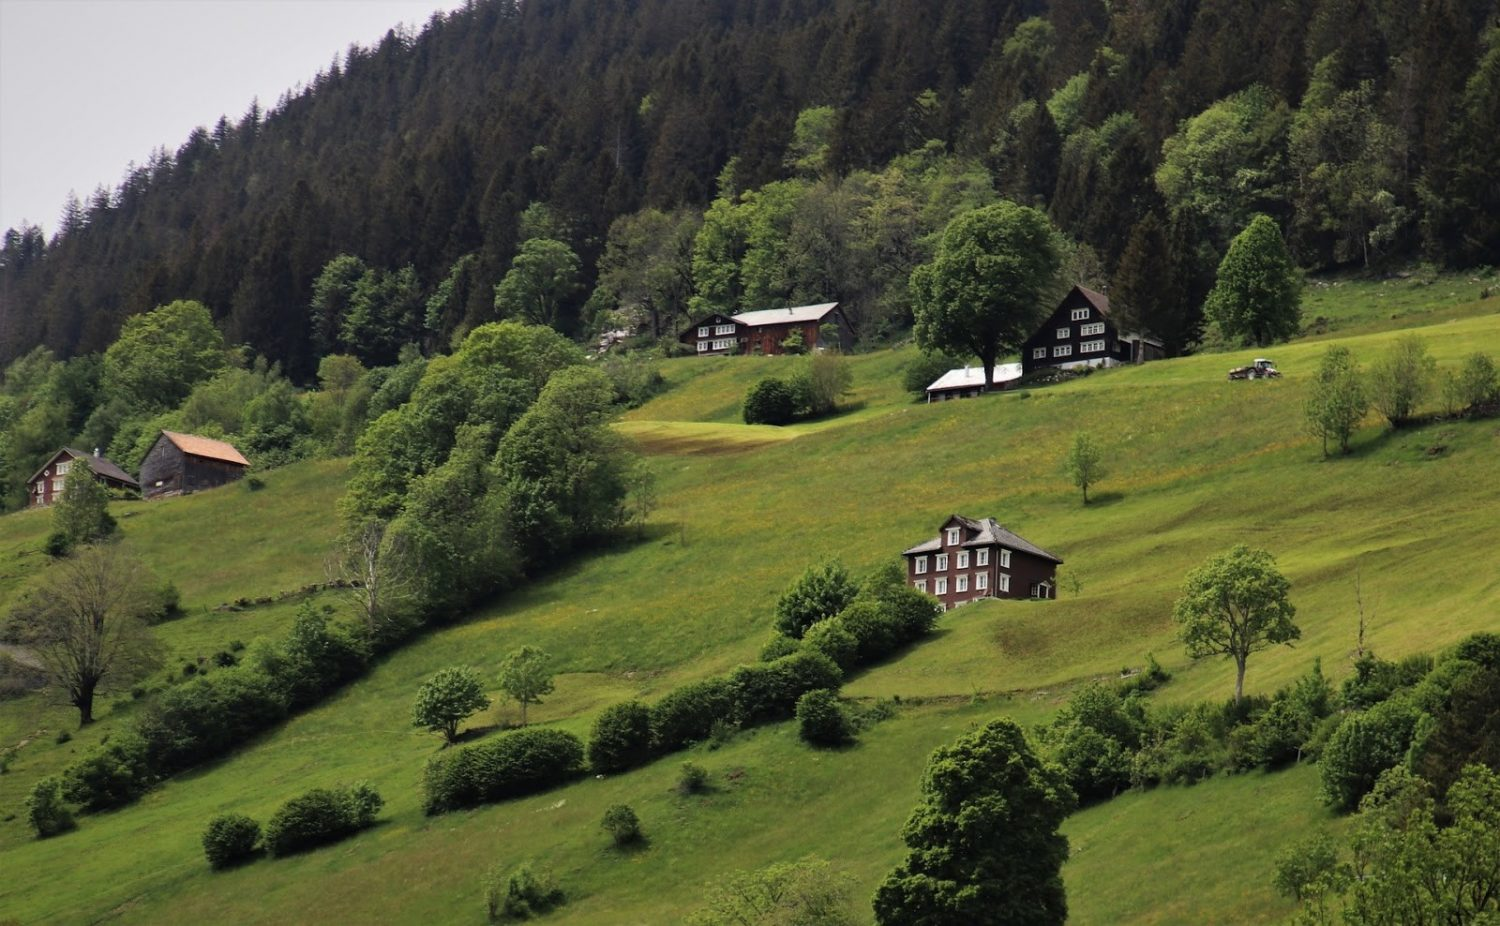 picture of houses on hill with trees